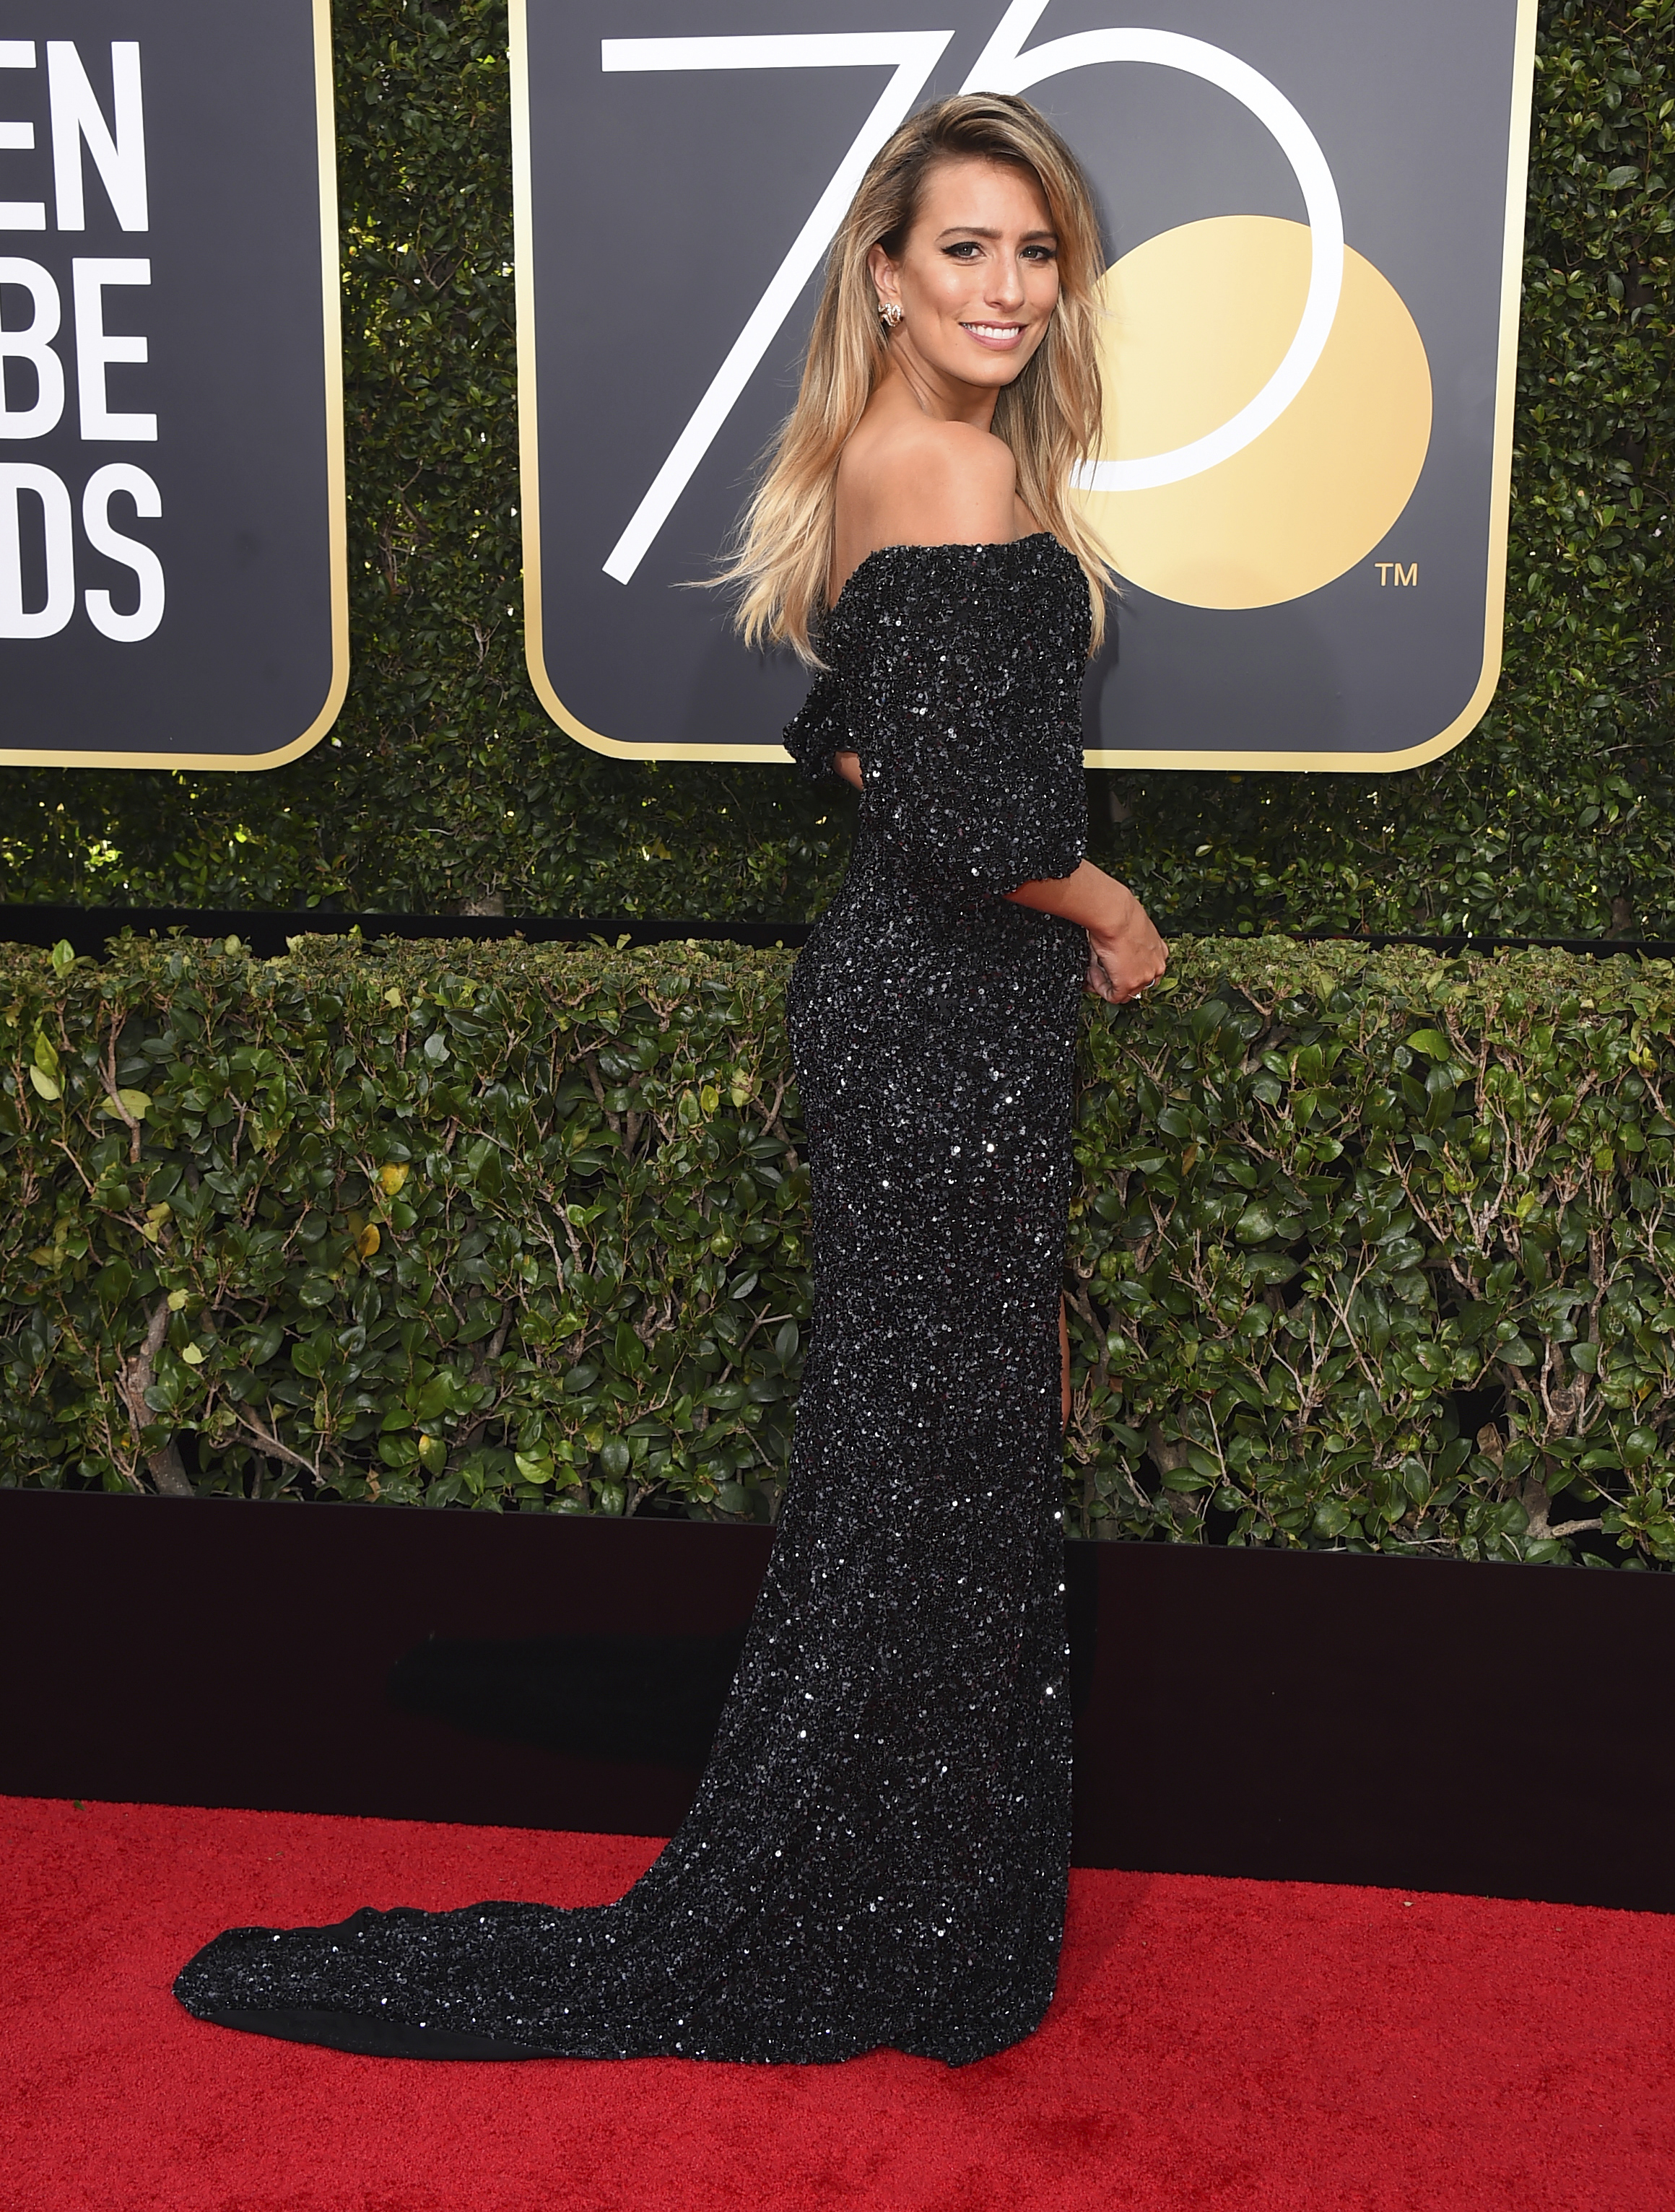 <div class='meta'><div class='origin-logo' data-origin='AP'></div><span class='caption-text' data-credit='Jordan Strauss/Invision/AP'>Renee Bargh arrives at the 75th annual Golden Globe Awards at the Beverly Hilton Hotel on Sunday, Jan. 7, 2018, in Beverly Hills, Calif.</span></div>